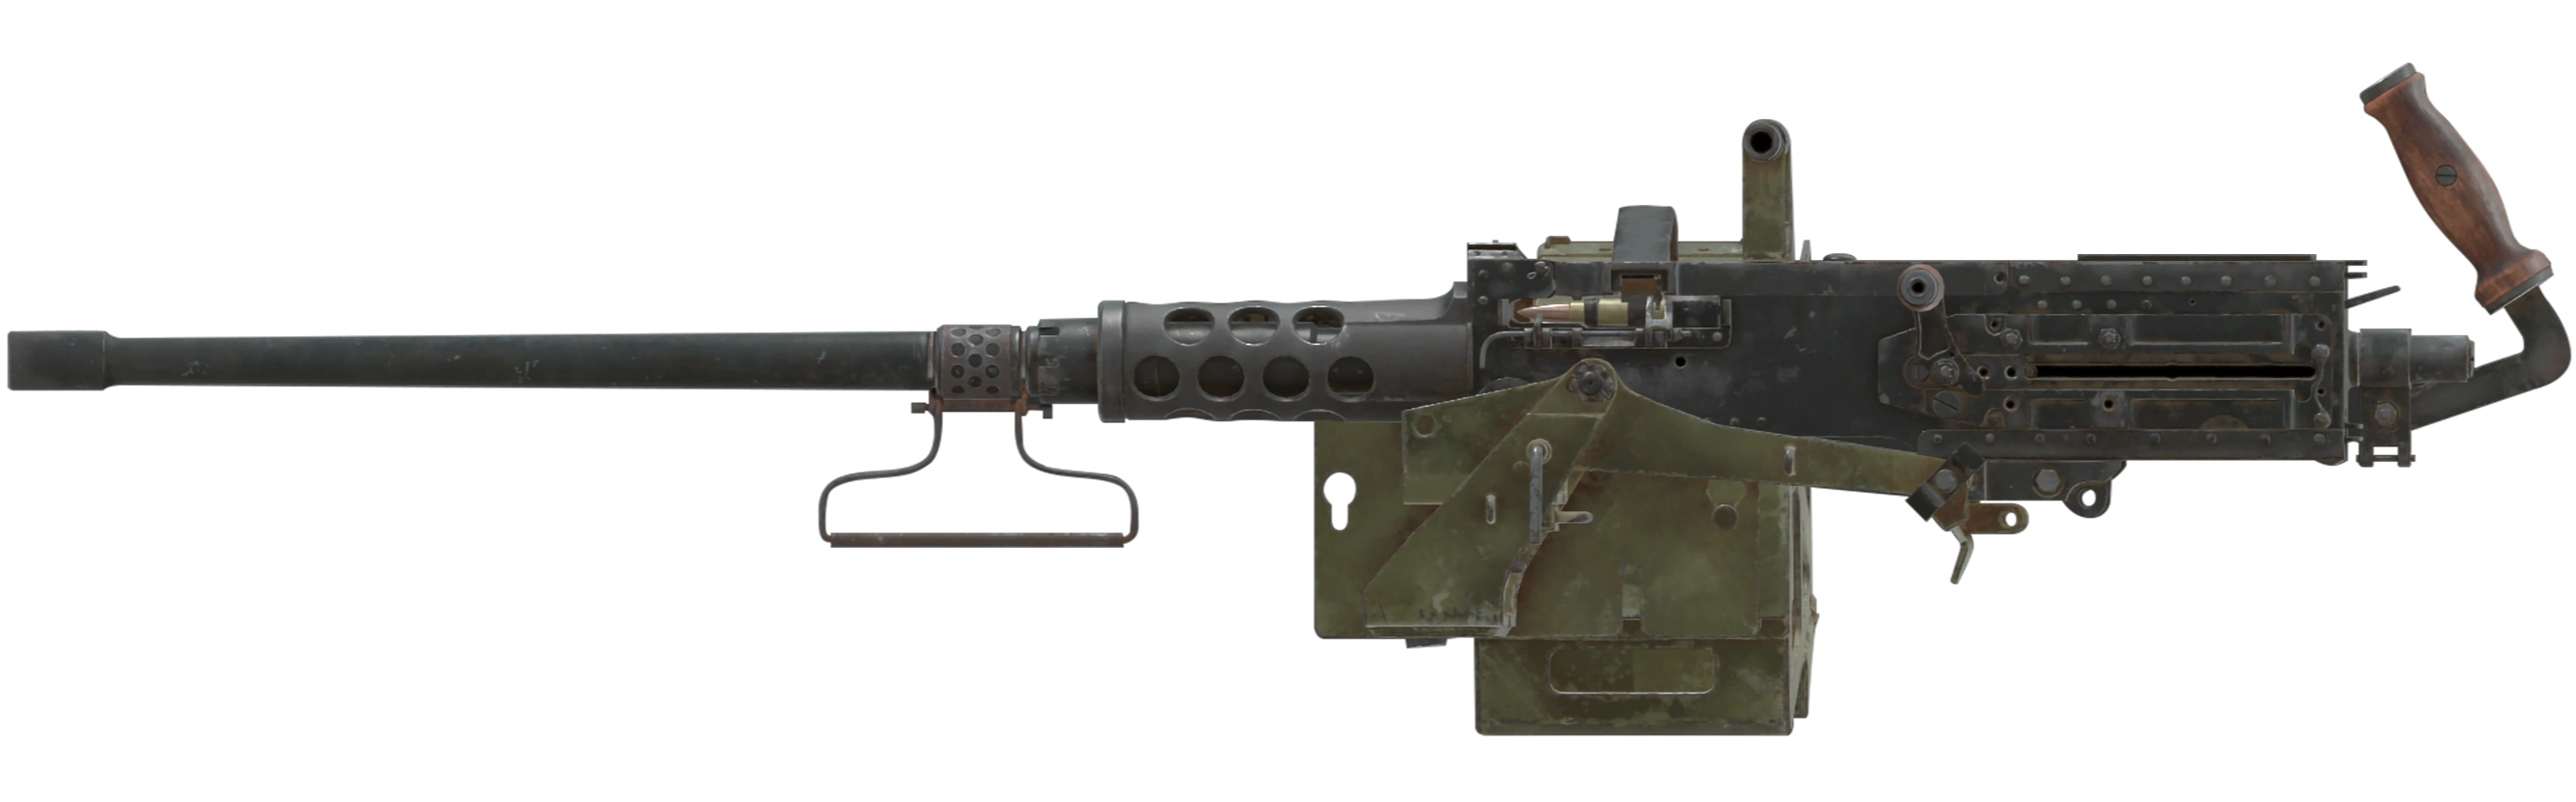 50 cal machine gun | Fallout Wiki | FANDOM powered by Wikia